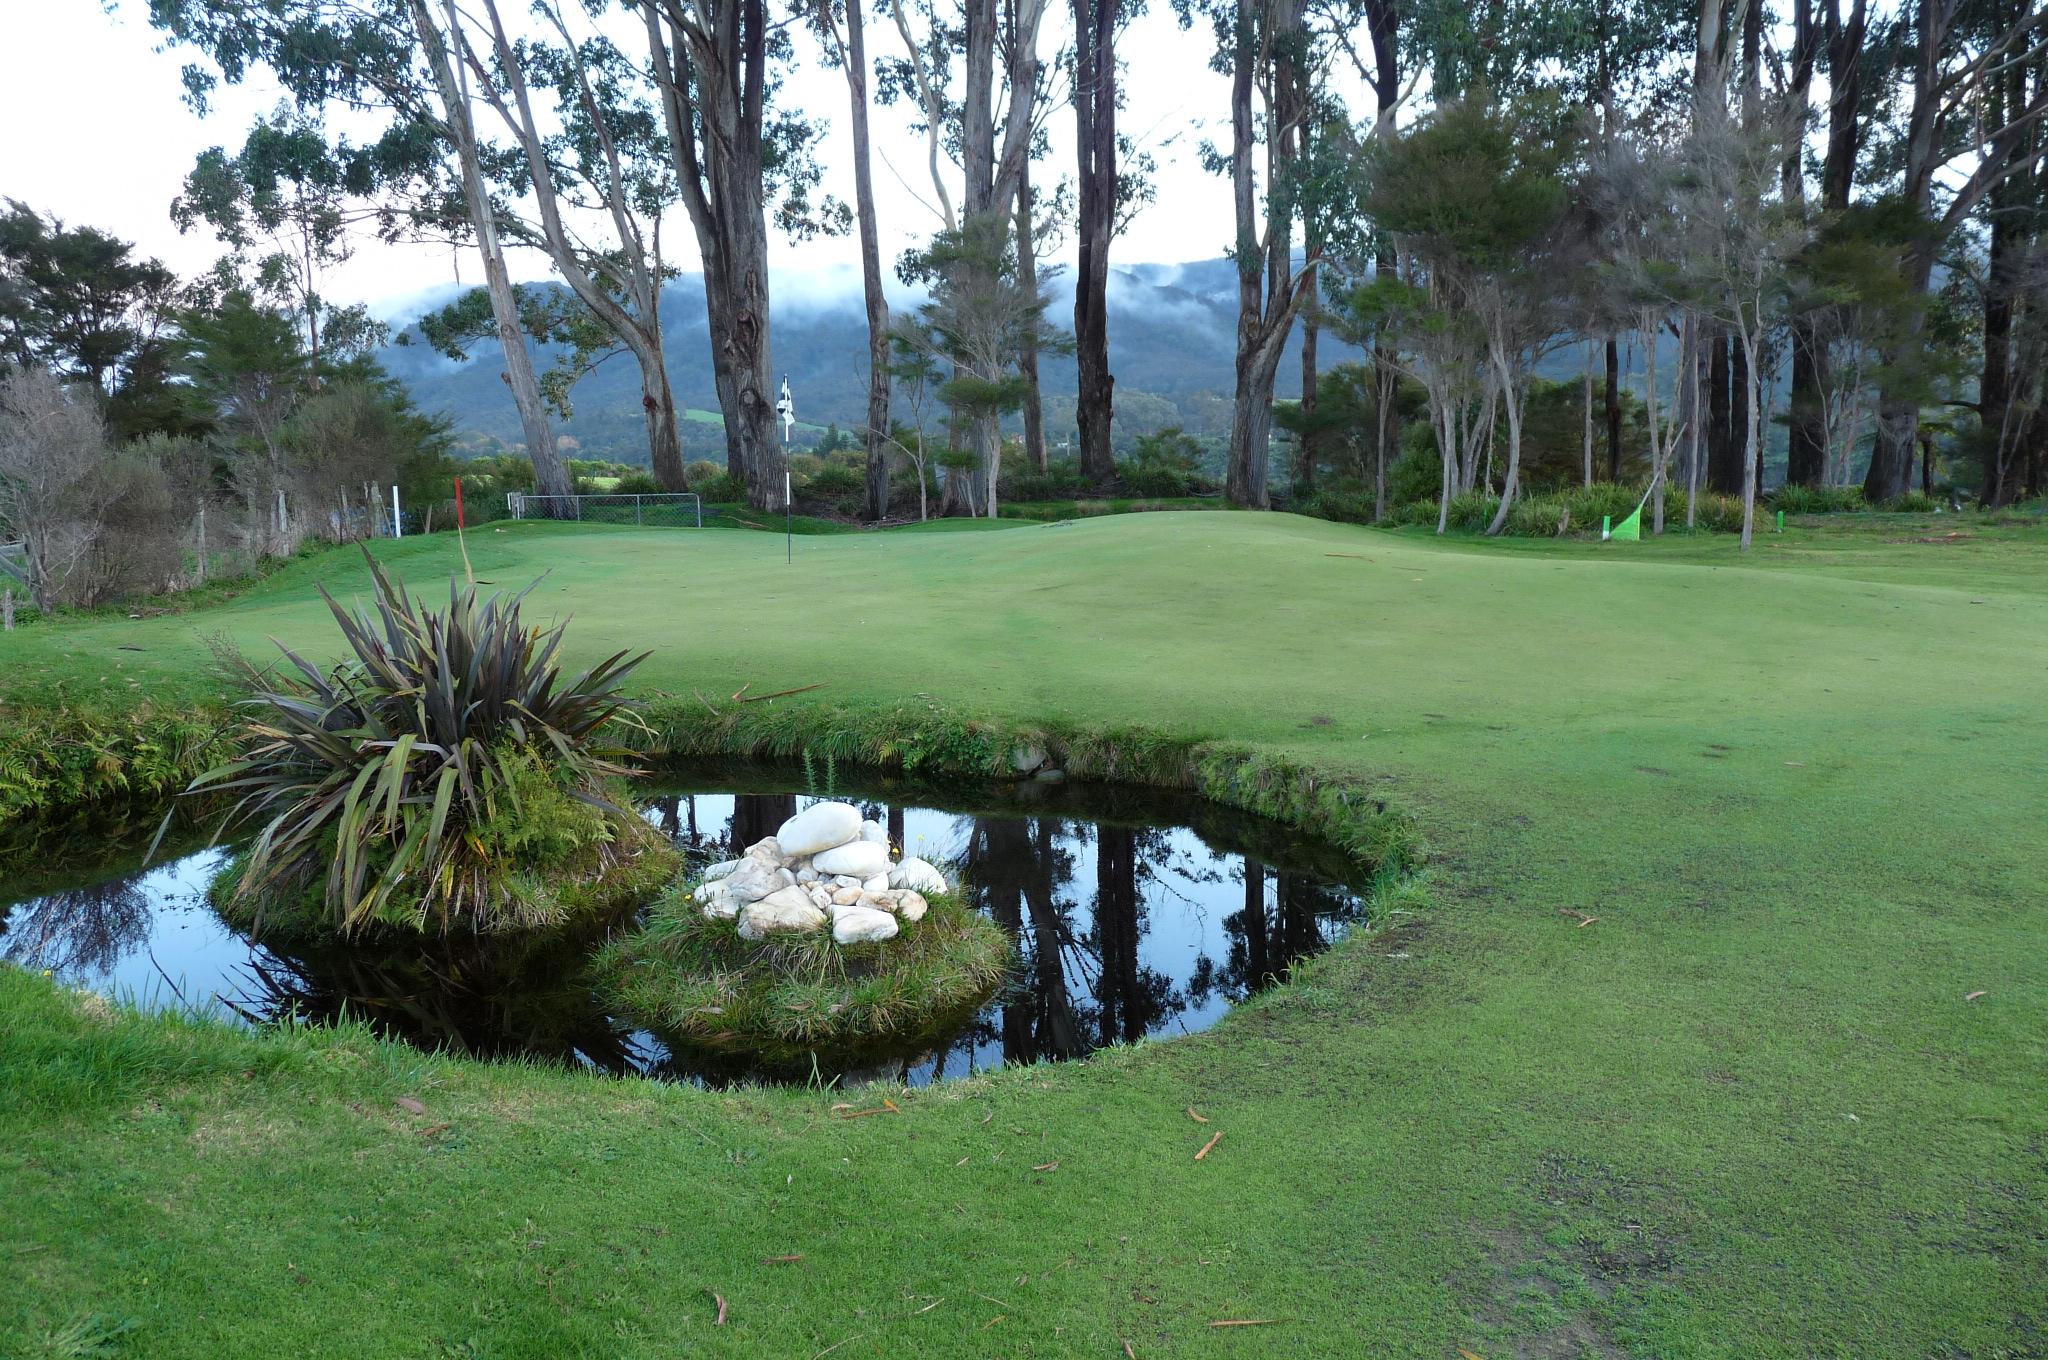 Pond fronts left of green